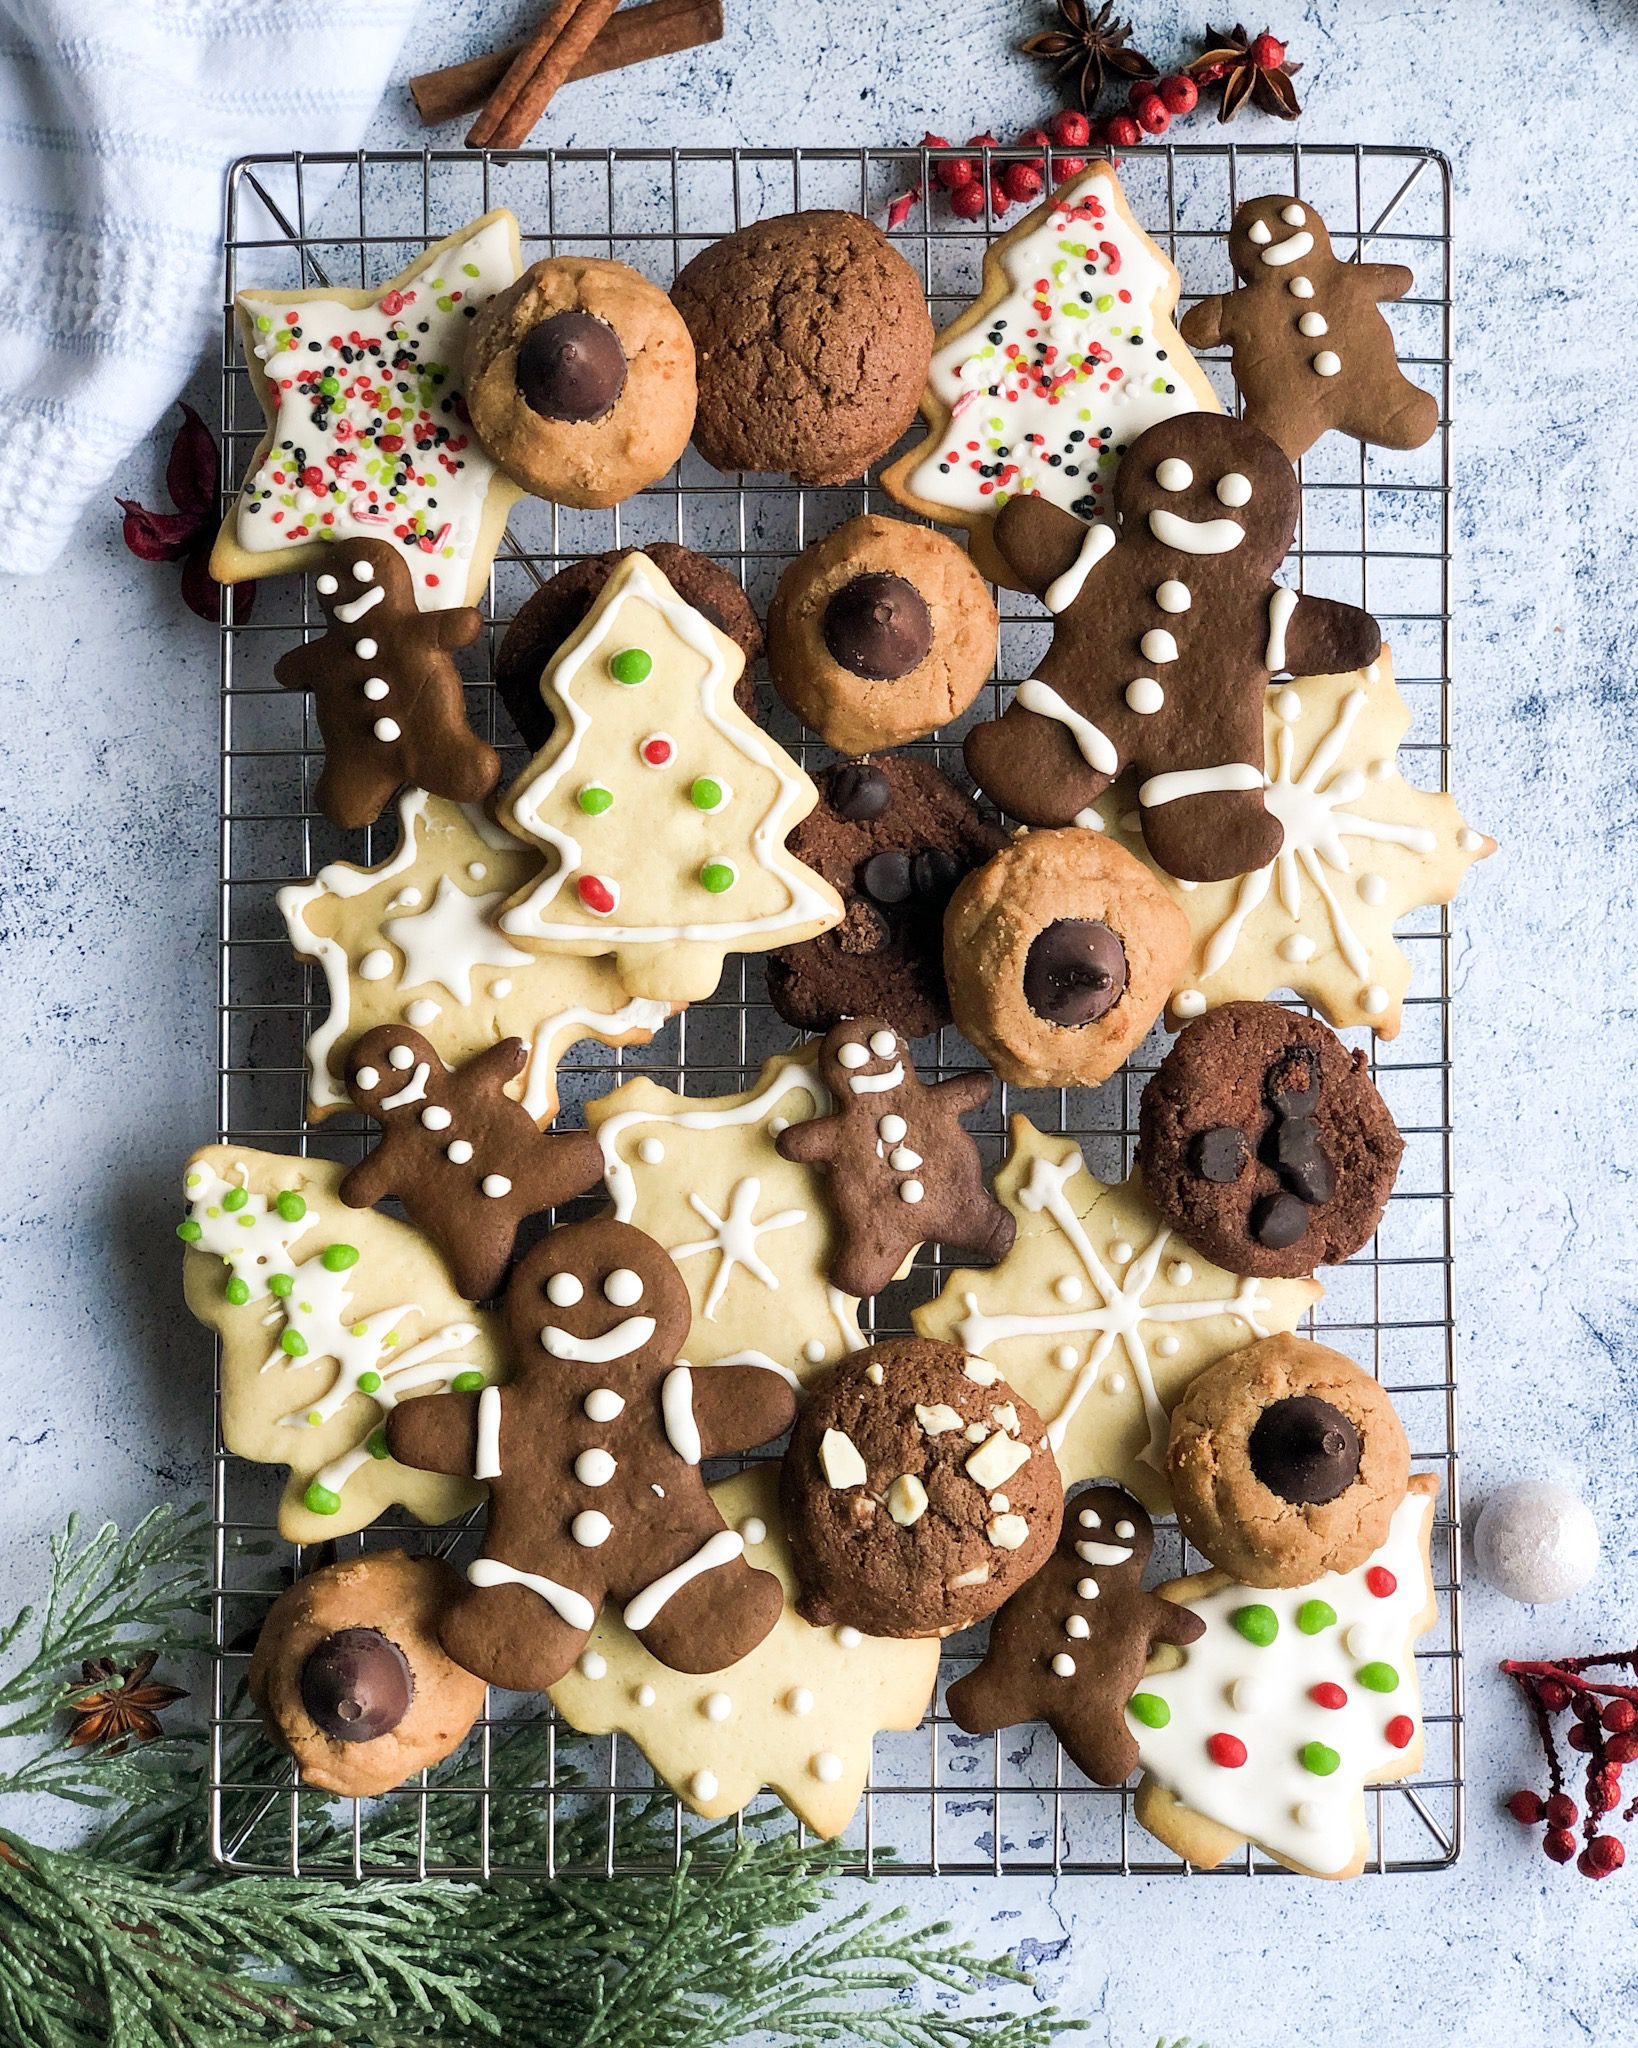 20 Healthy & Easy Christmas Cookies from paleo to vegan to classic! This is a round-up of my own Banana Diaries recipes to some of my favorite bloggers'!